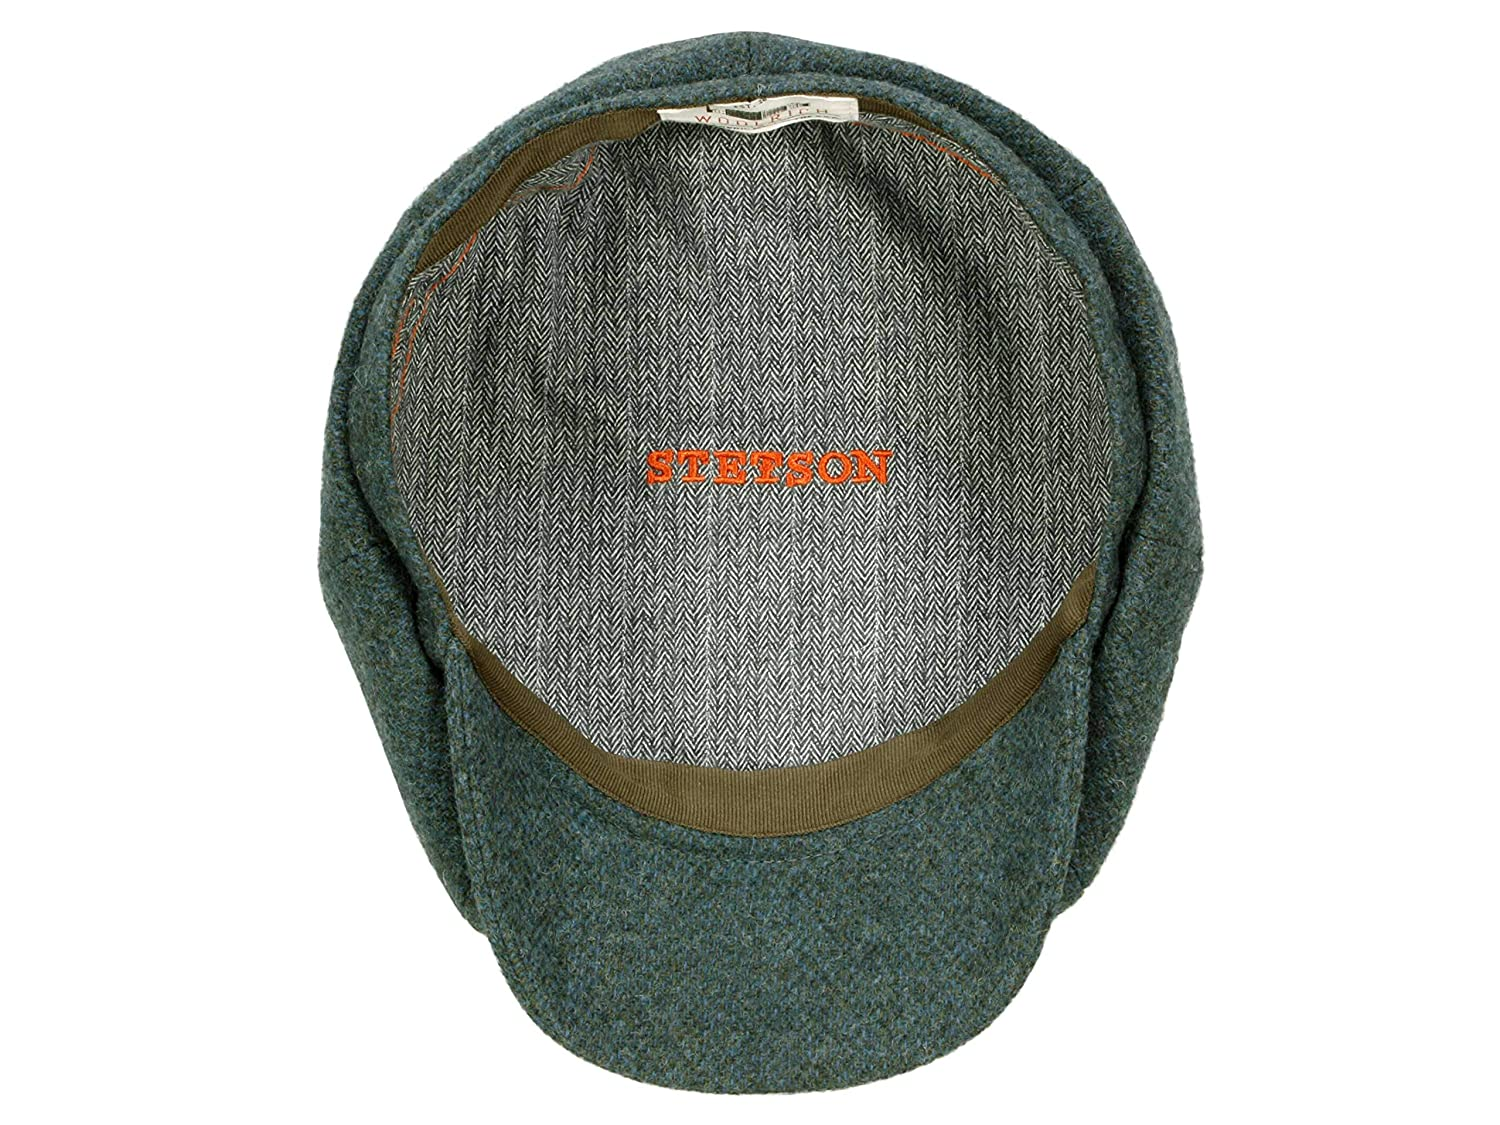 Stetson Casquette Hatteras Woolrich Homme Made in The EU Casquettes Gavroche Type avec Visiere Doublure Automne-Hiver Doublure